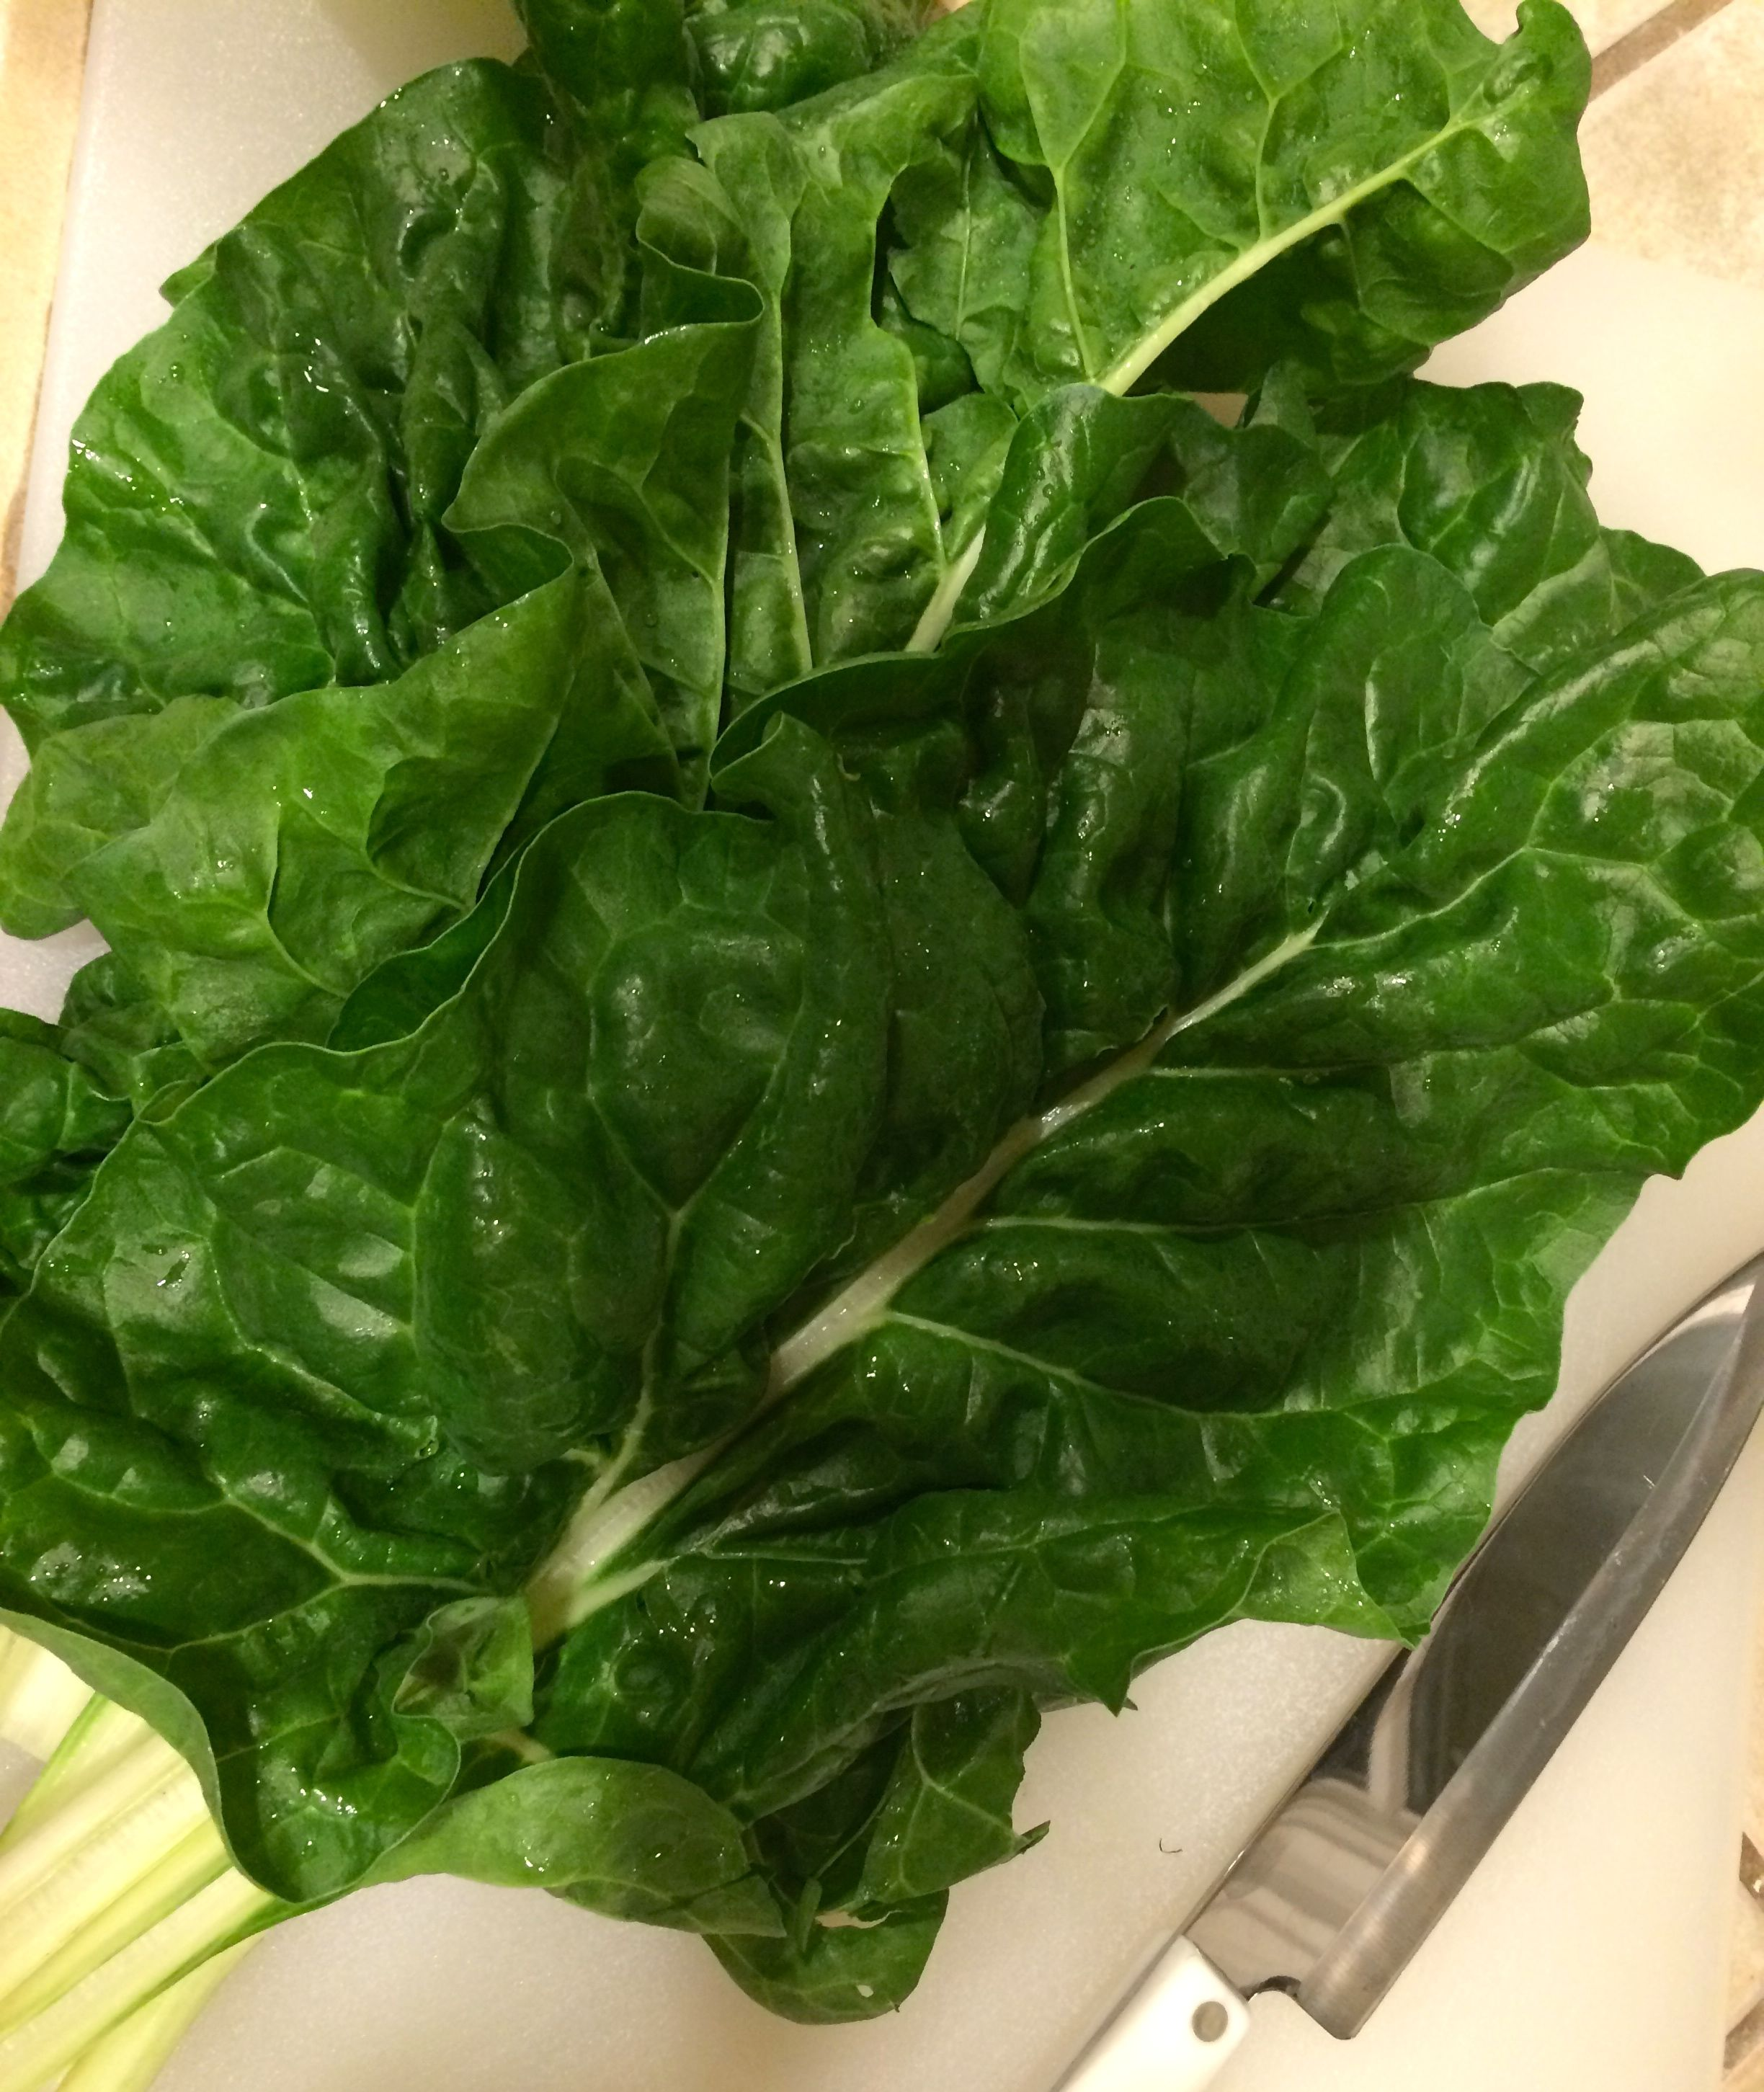 Fresh Swiss chard leaves